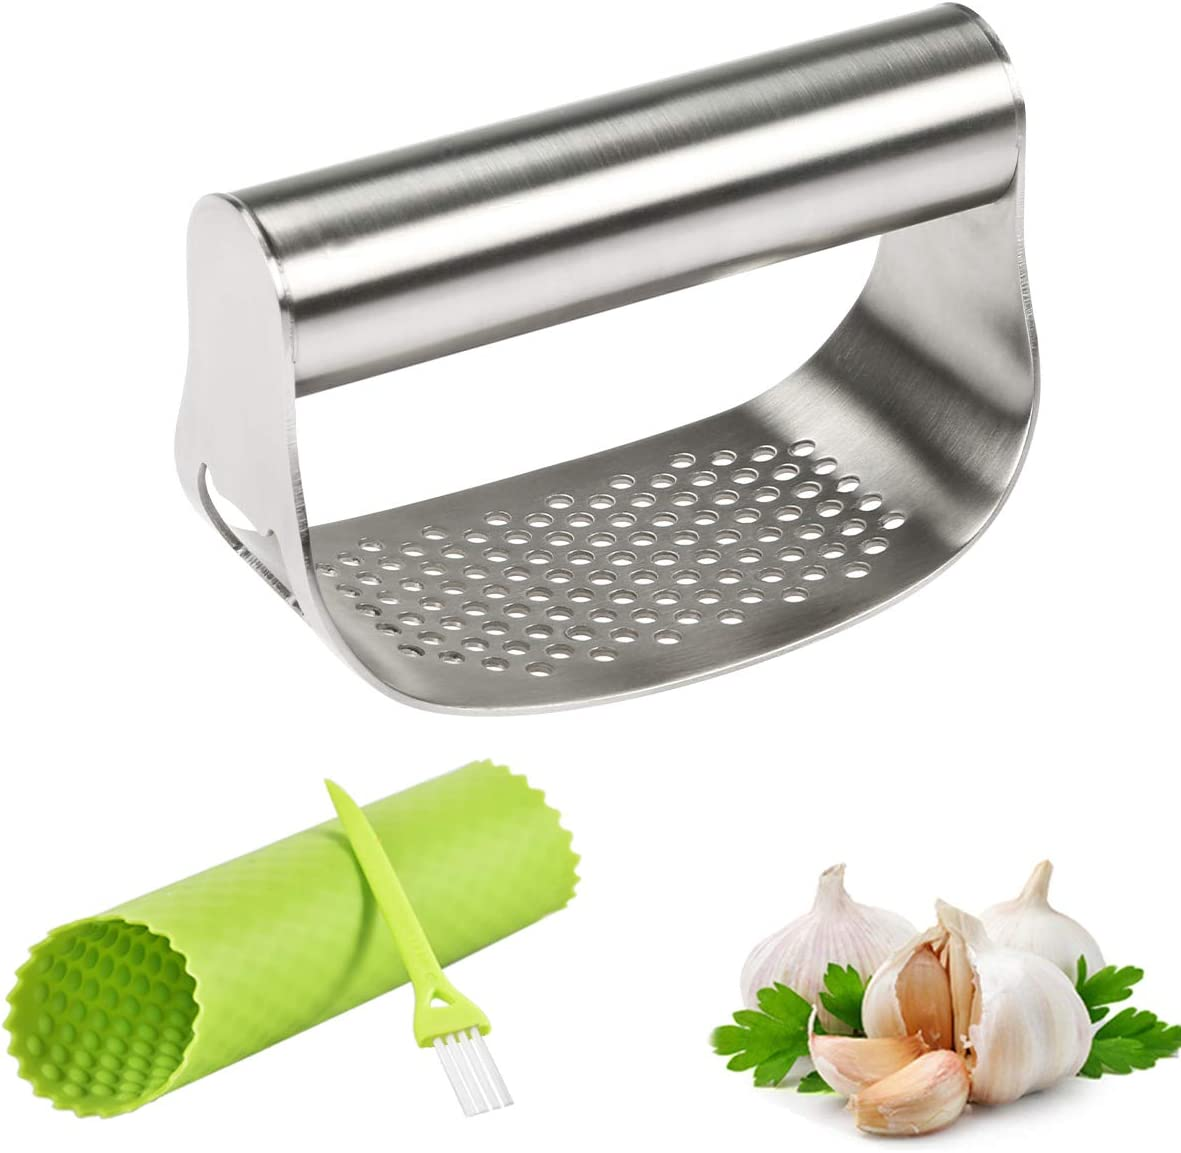 FAVIA Garlic Press Rocker Stainless Steel Crusher Mincer with Beer Opener, Silicone Tube Peeler & Cleaning Brush - Dishwasher Safe Sturdy Kitchen Gadgets (Super Rocker)